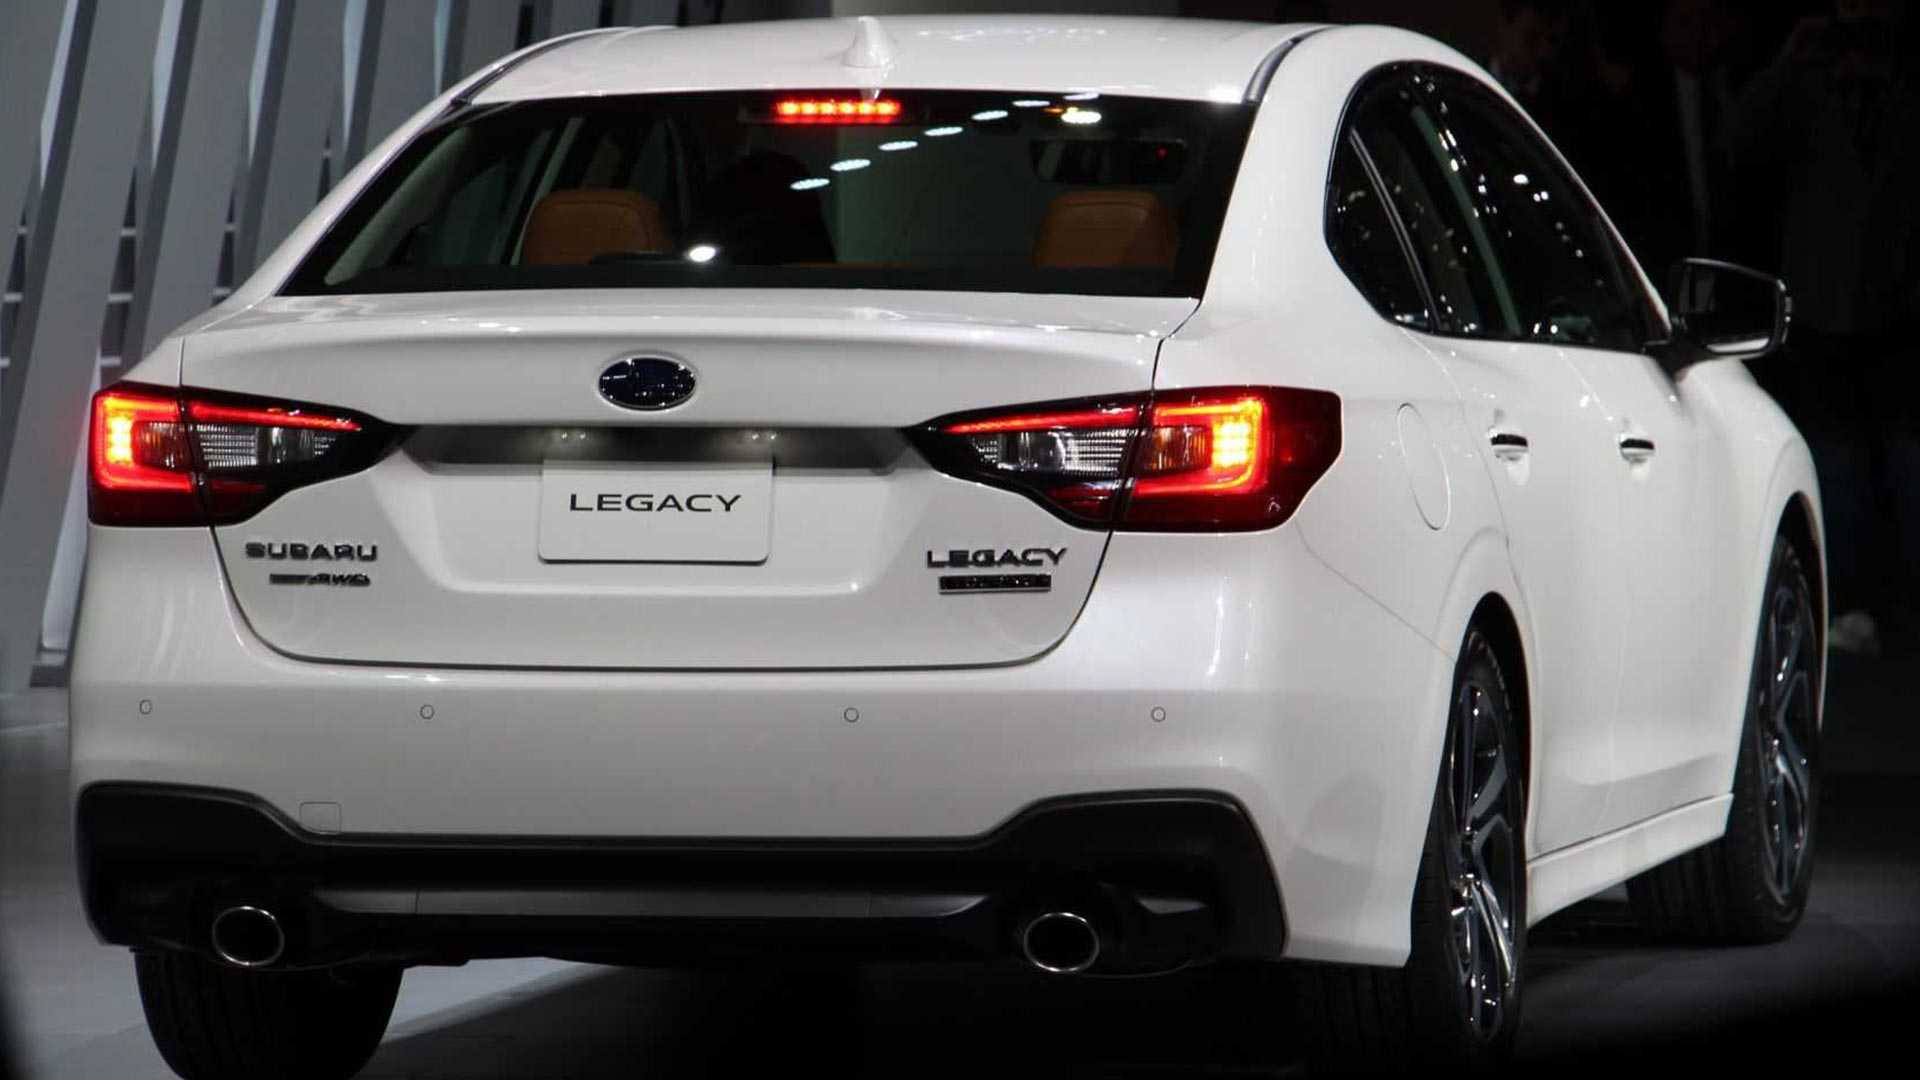 35 All New Subaru Legacy 2020 Japan Price and Review by Subaru Legacy 2020 Japan